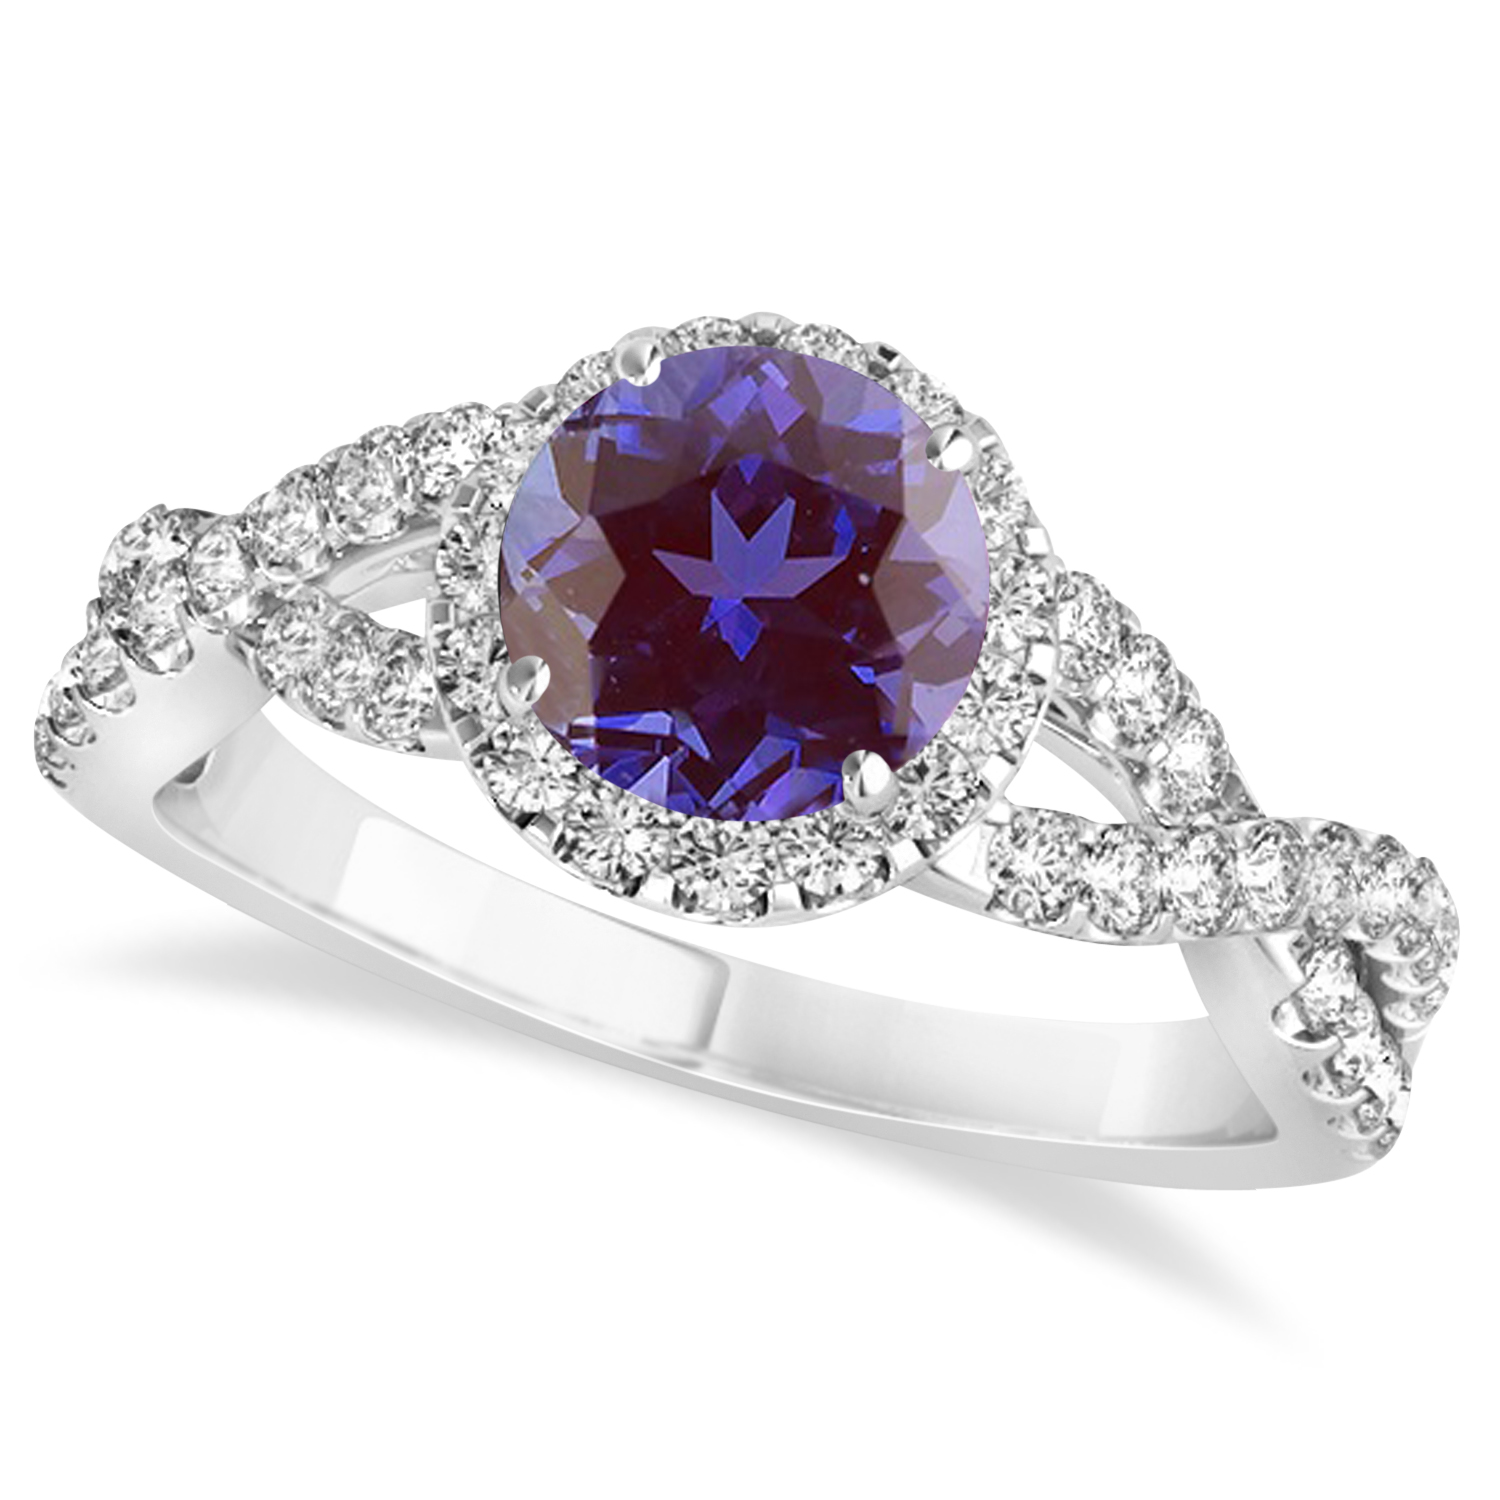 Alexandrite & Diamond Twisted Engagement Ring 14k White Gold 1.80ct